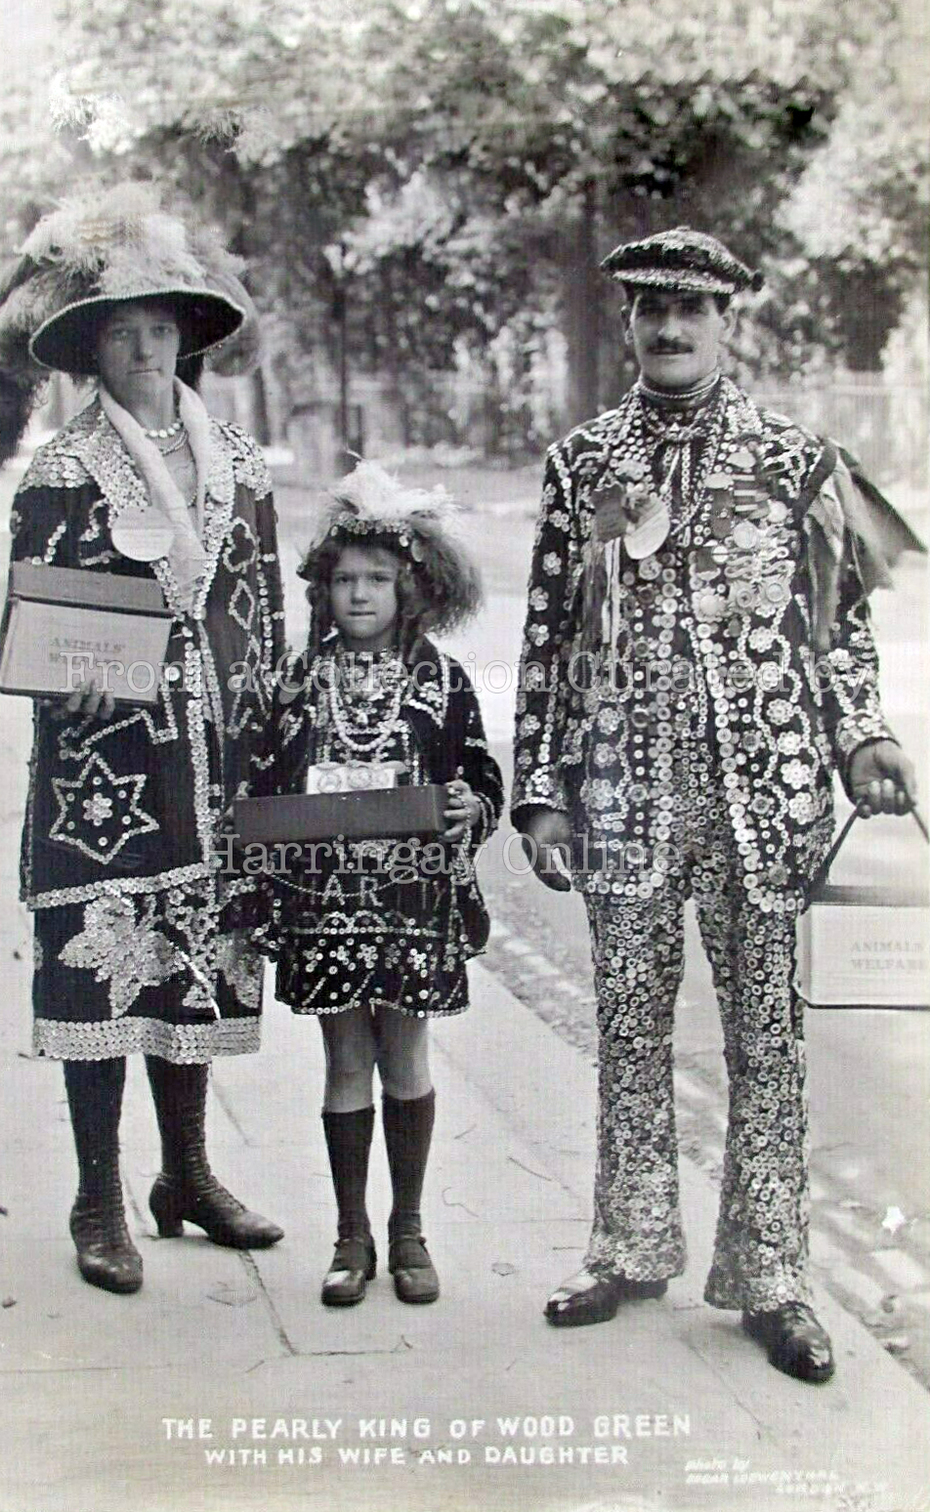 Pearly King of Wood Green c1905